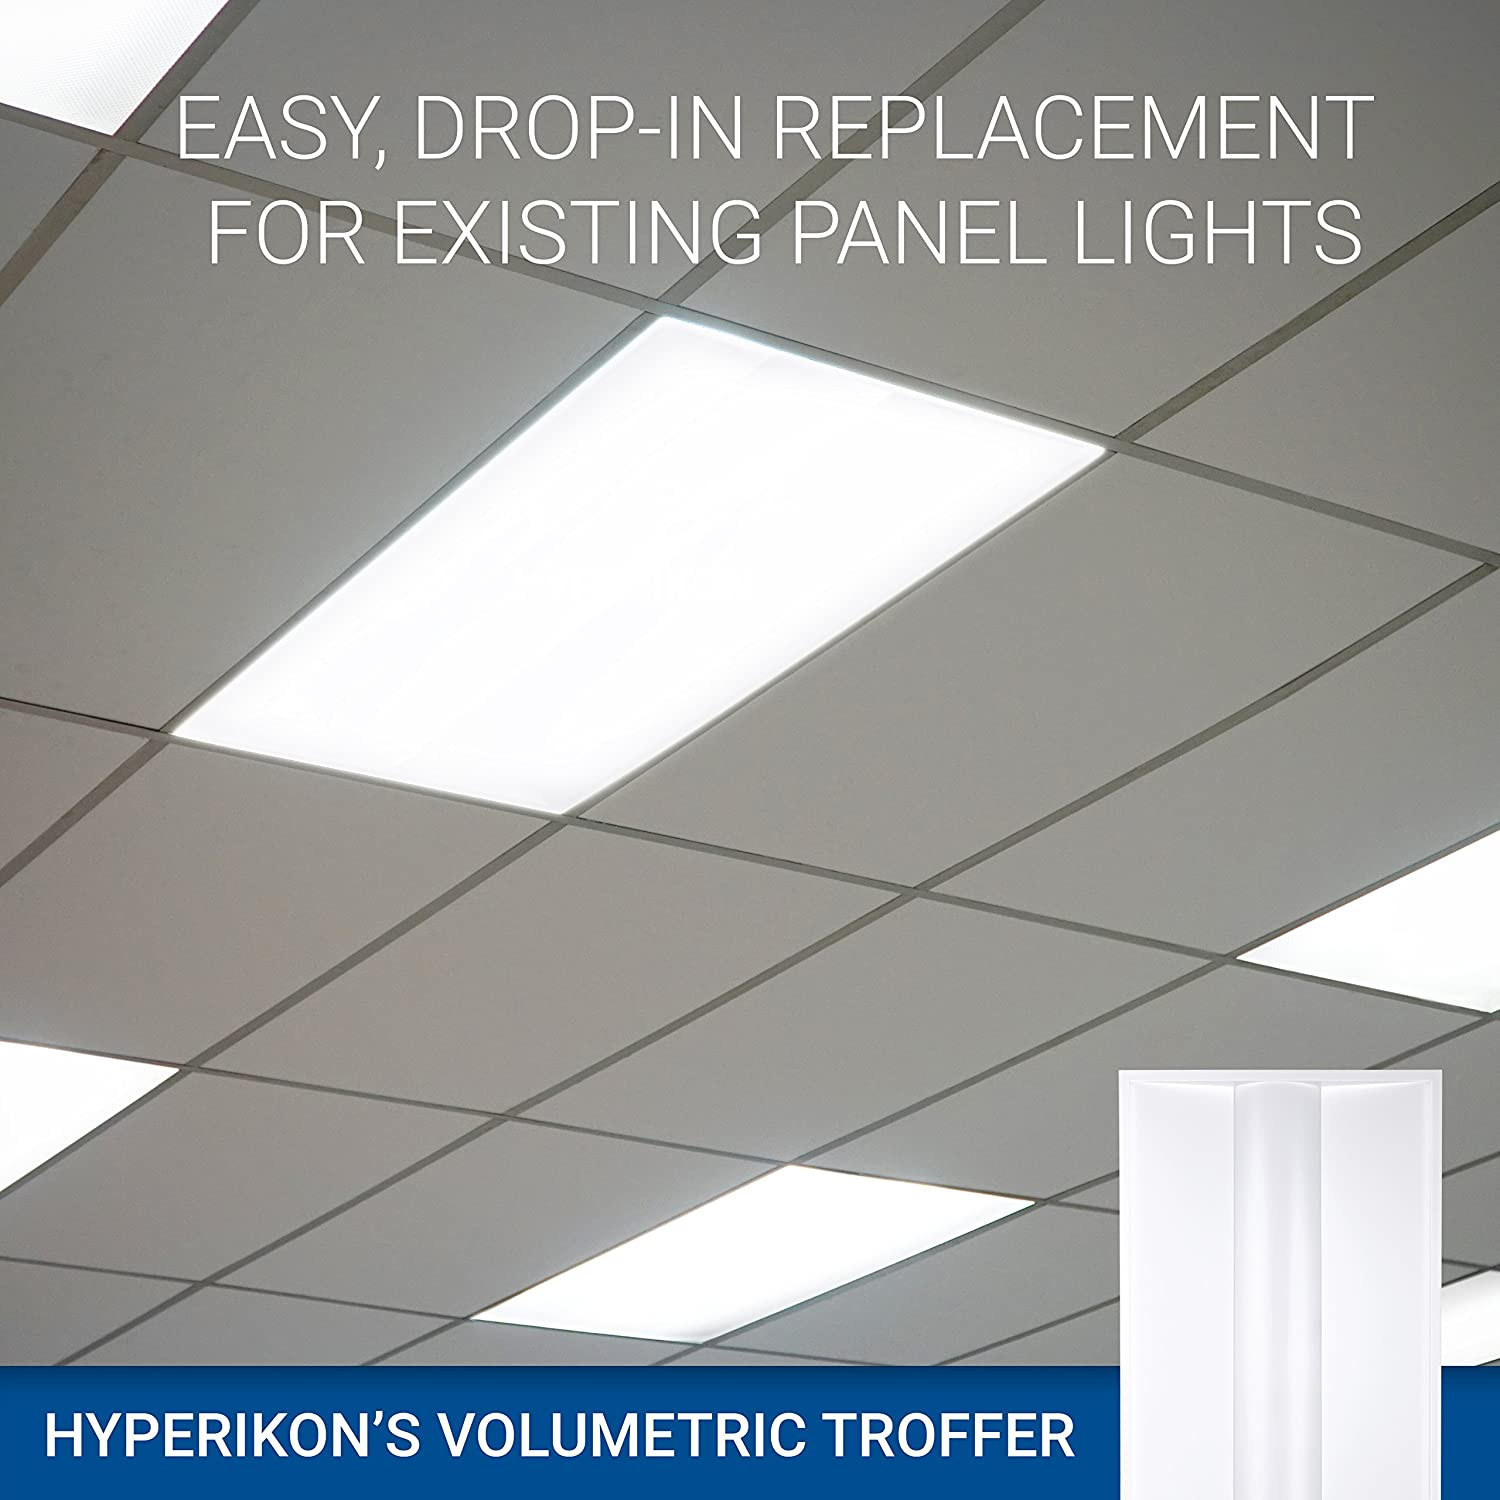 Hyperikon 2x4 ft led troffer dimmable panel volumetric troffer 40w dimmable panel volumetric troffer 40w recessed panel light fixture 5000k 5000 lumens fluorescent replacement commercial drop ceiling light aloadofball Choice Image